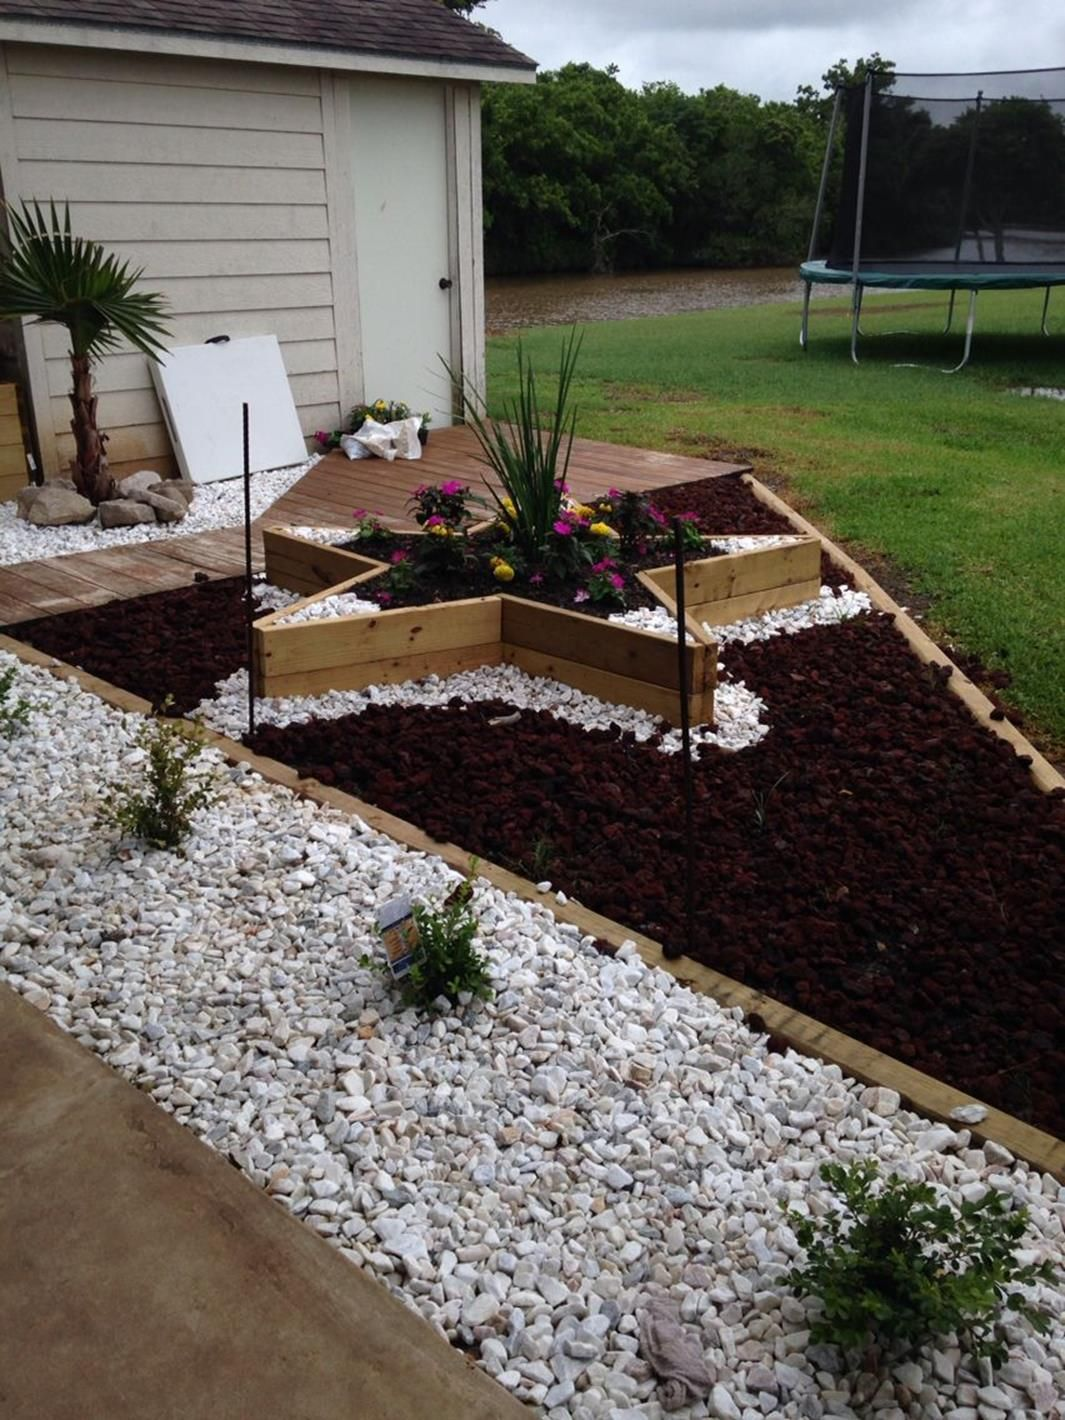 19++ Ideas for mulch beds ideas